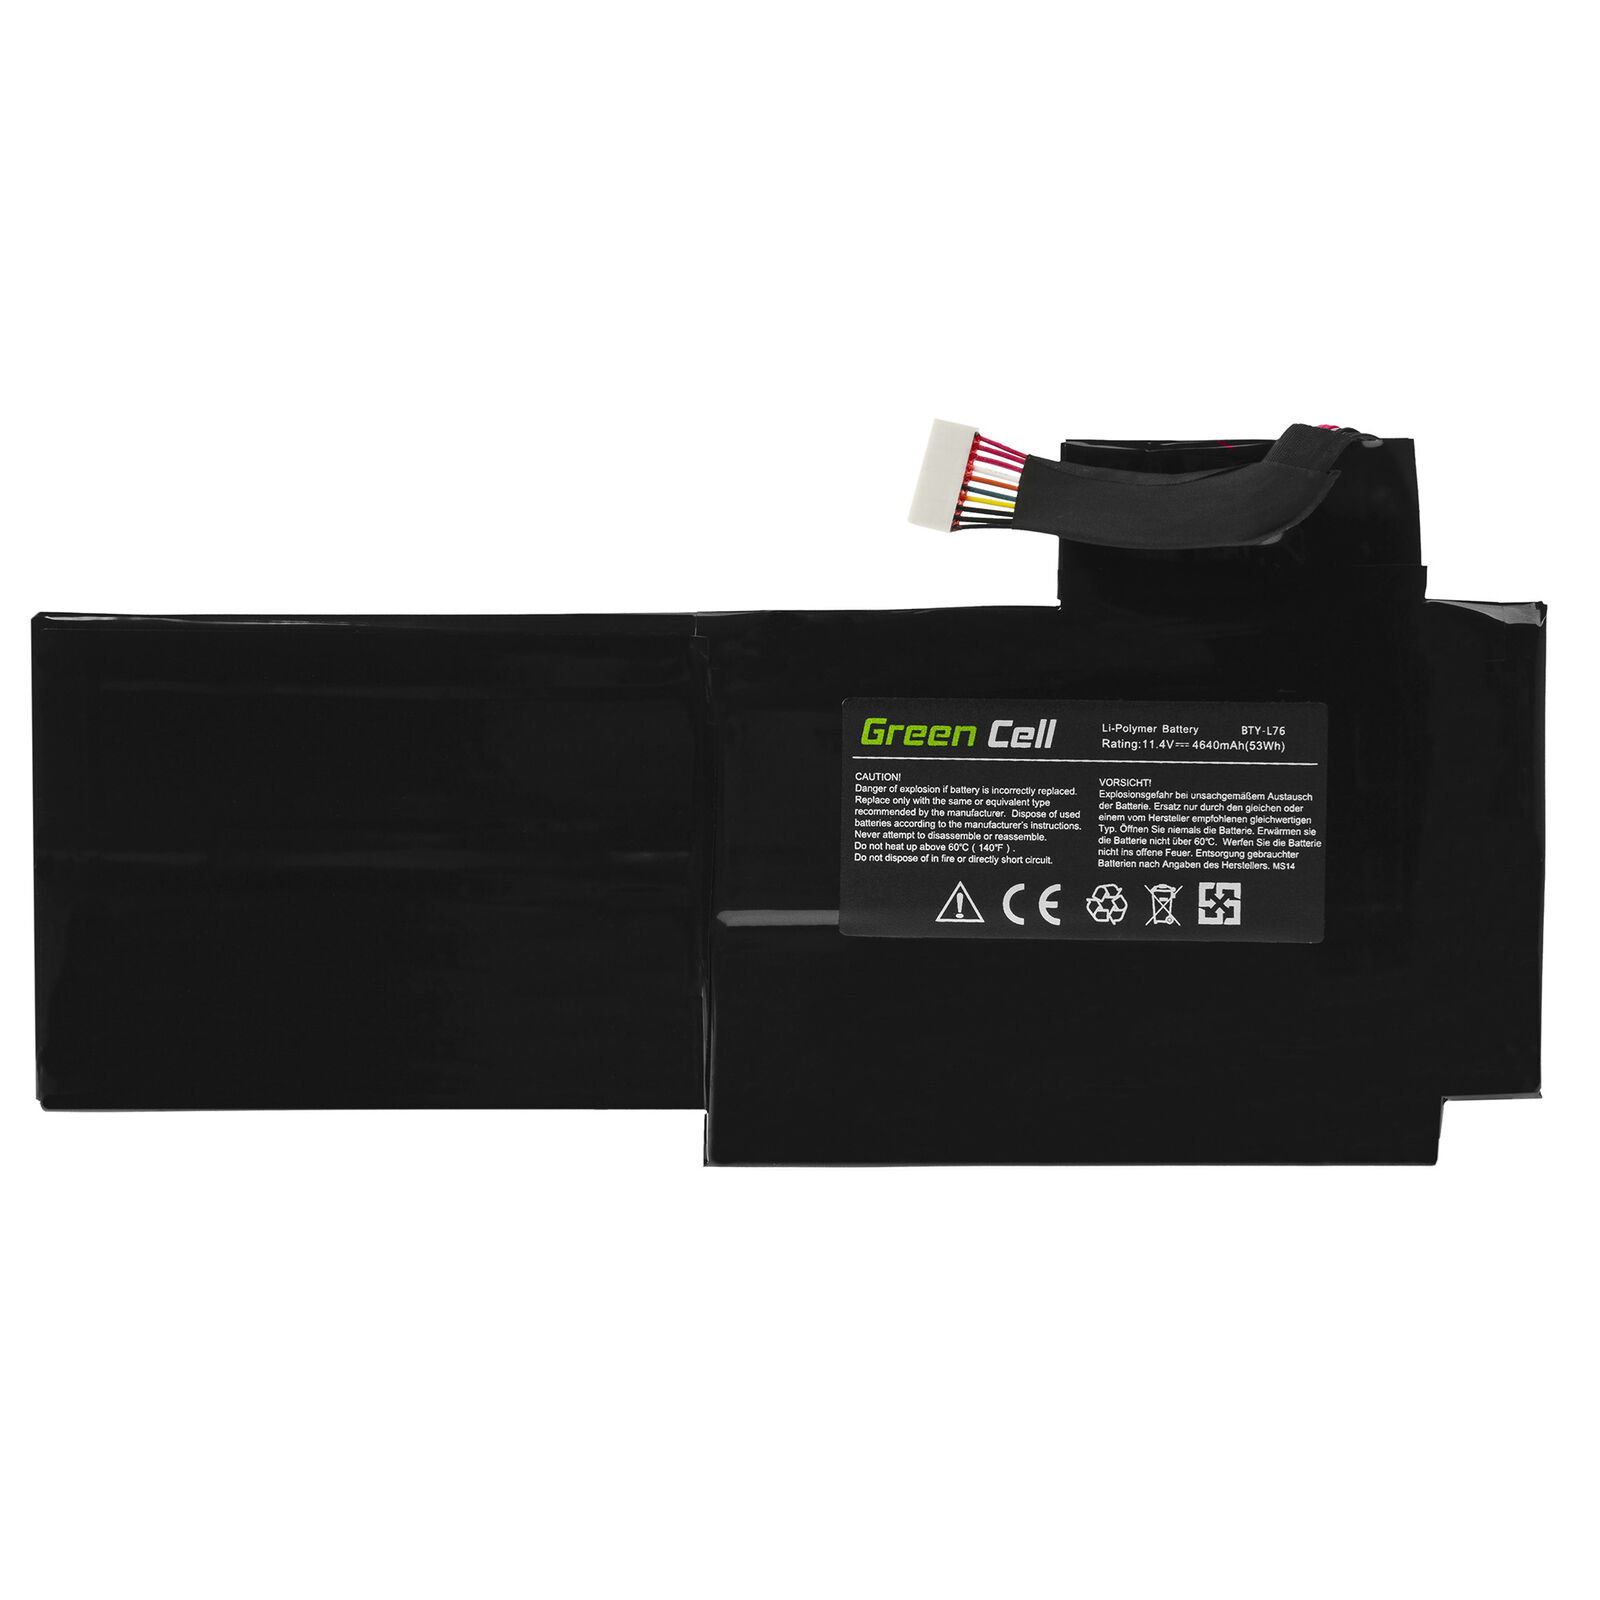 BTY-L76 MSI GS70 2PE-025CN 2QE-083CN compatible battery